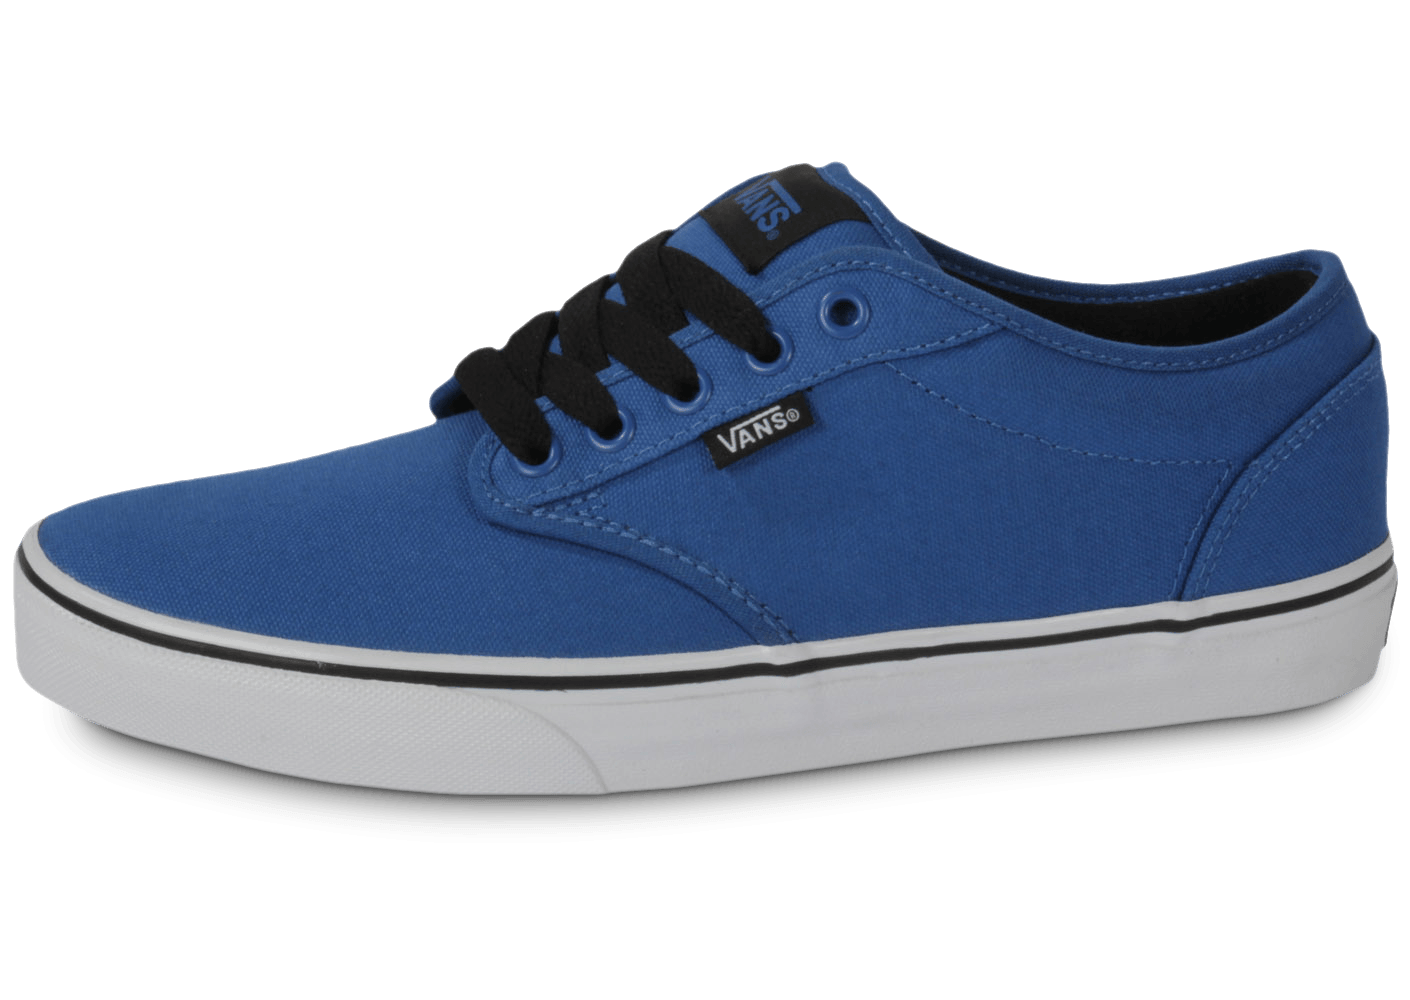 Vans Atwood Bleue - Chaussures Baskets homme - Chausport